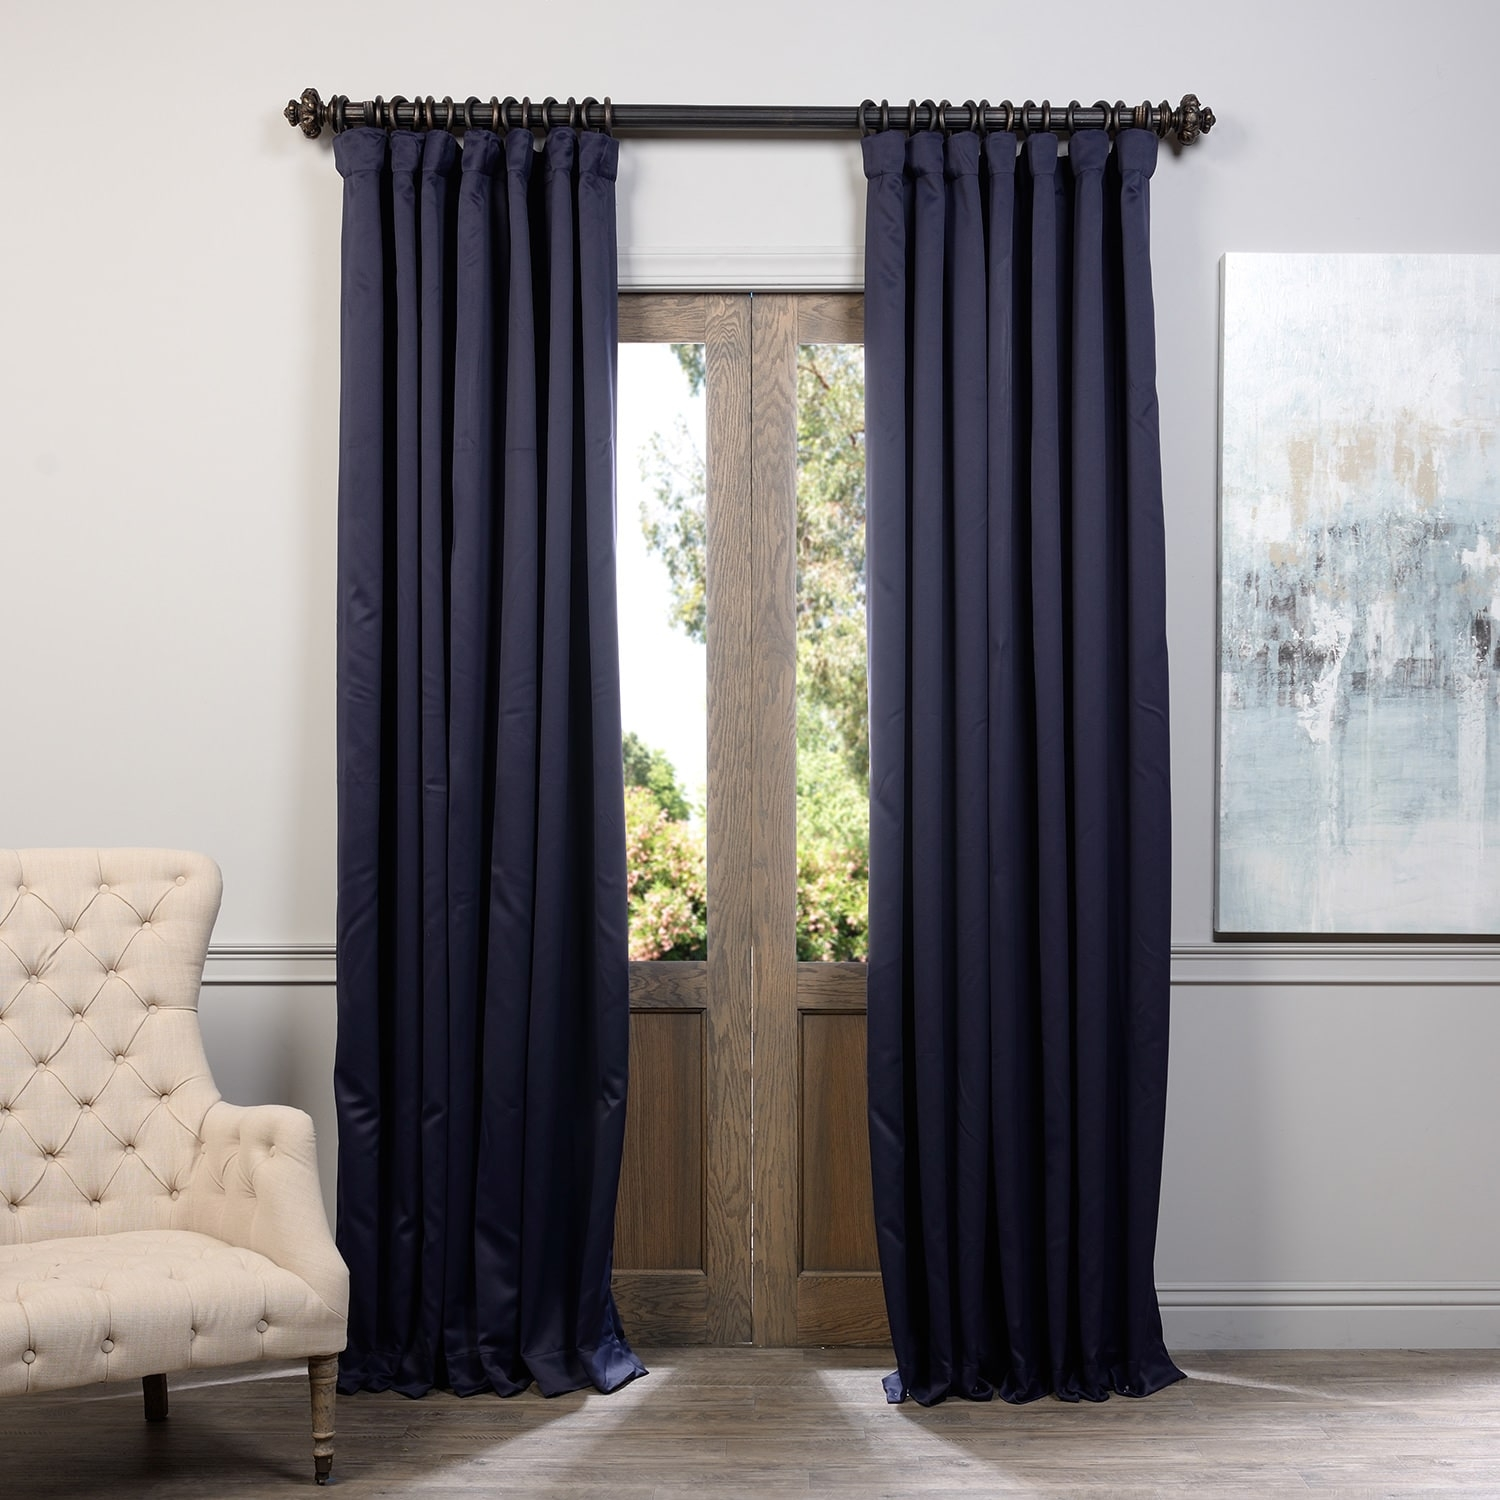 Lofty Inspiration Blackout Curtains 108 Inches Blackout Curtains Within Long Drop Curtains (Image 12 of 15)